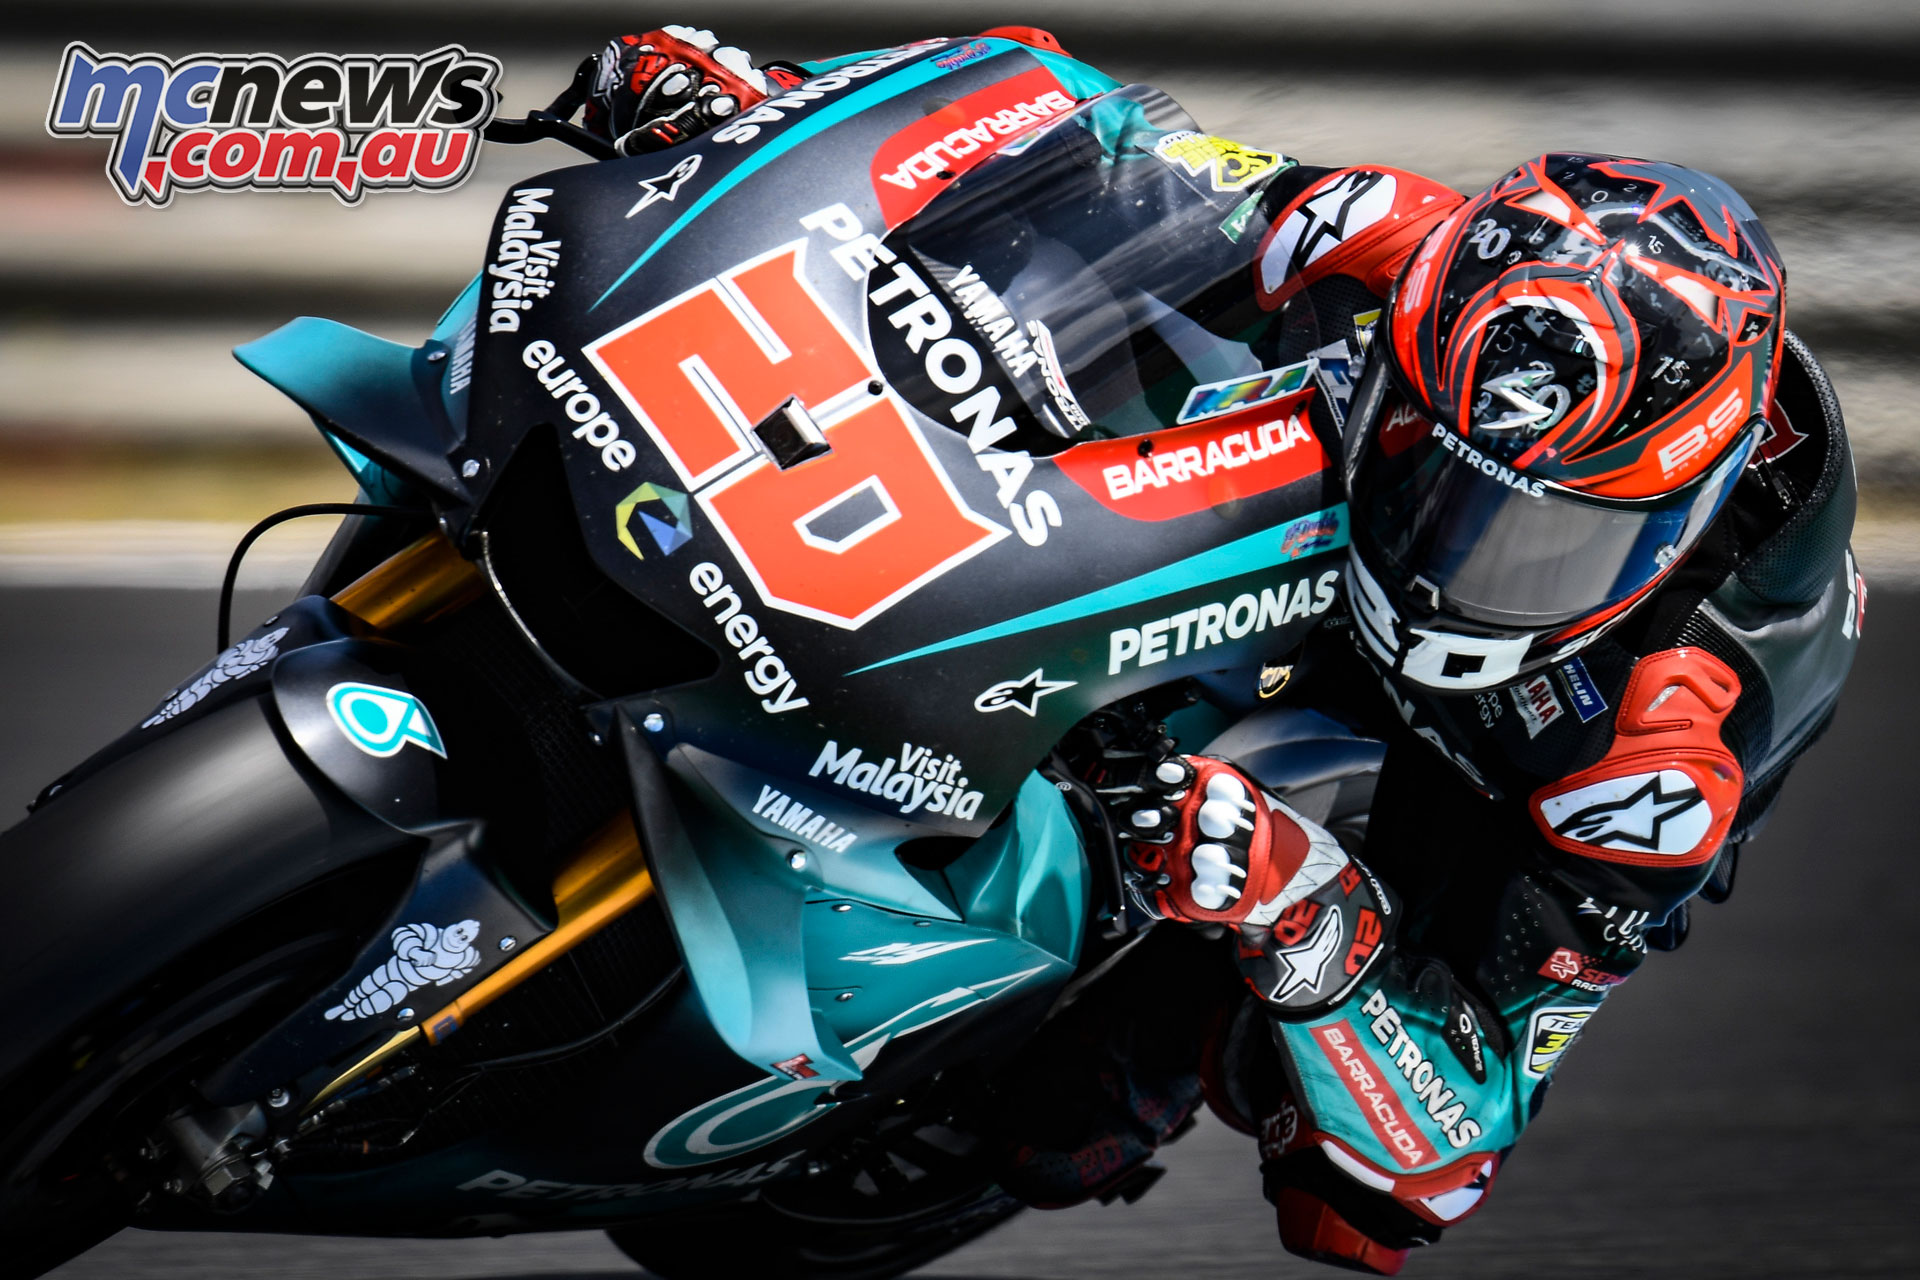 Fabio Quartararo Fastest At Jerez Official Test Miller P13 Motorcycle News Sport And Reviews